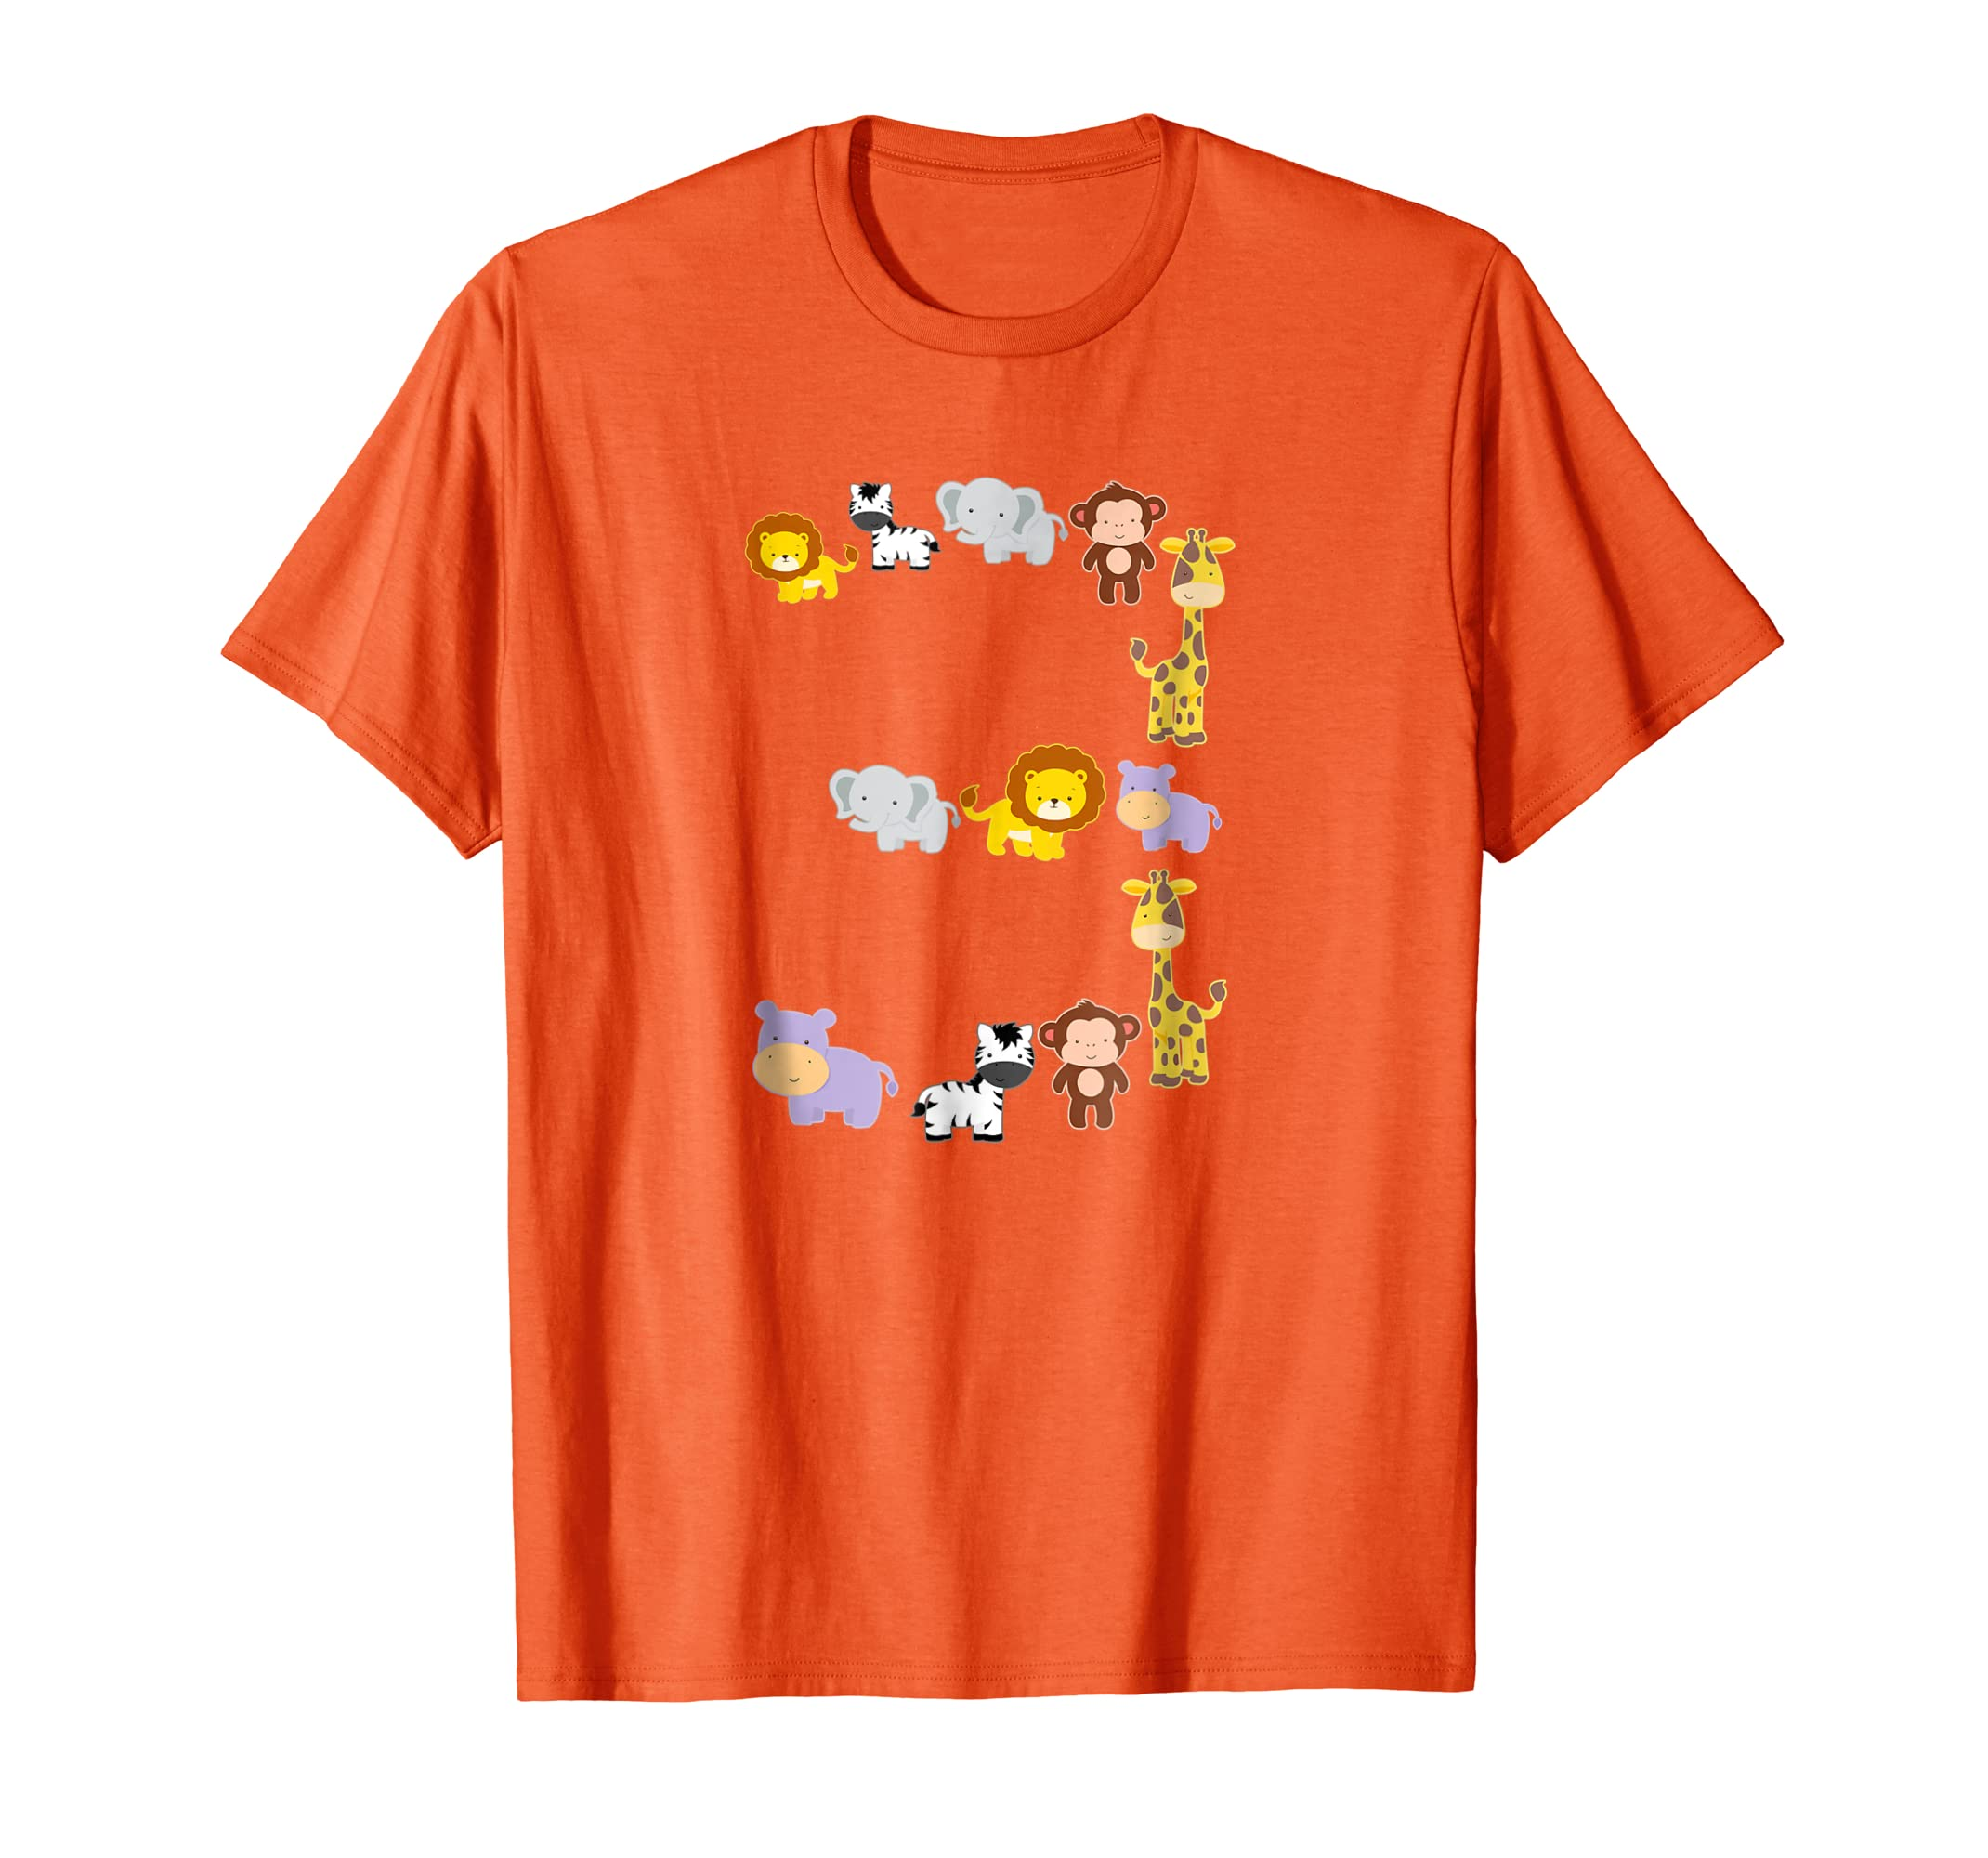 Birthday Shirt 3 Year Old Boys Girls Cute Animals Party Gift